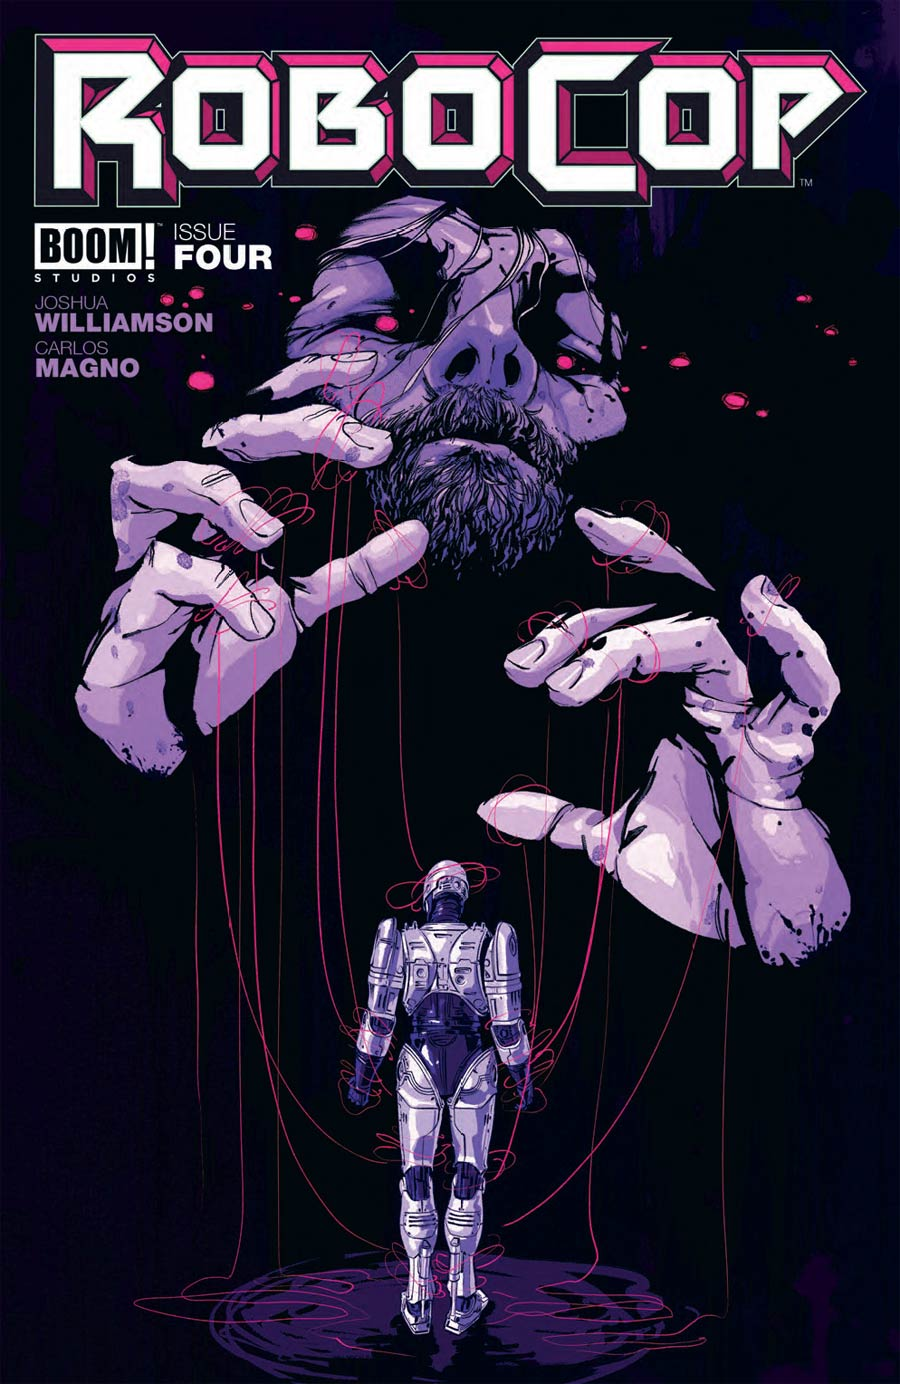 Robocop 2014 #4 Cover A Regular Goni Montes Cover